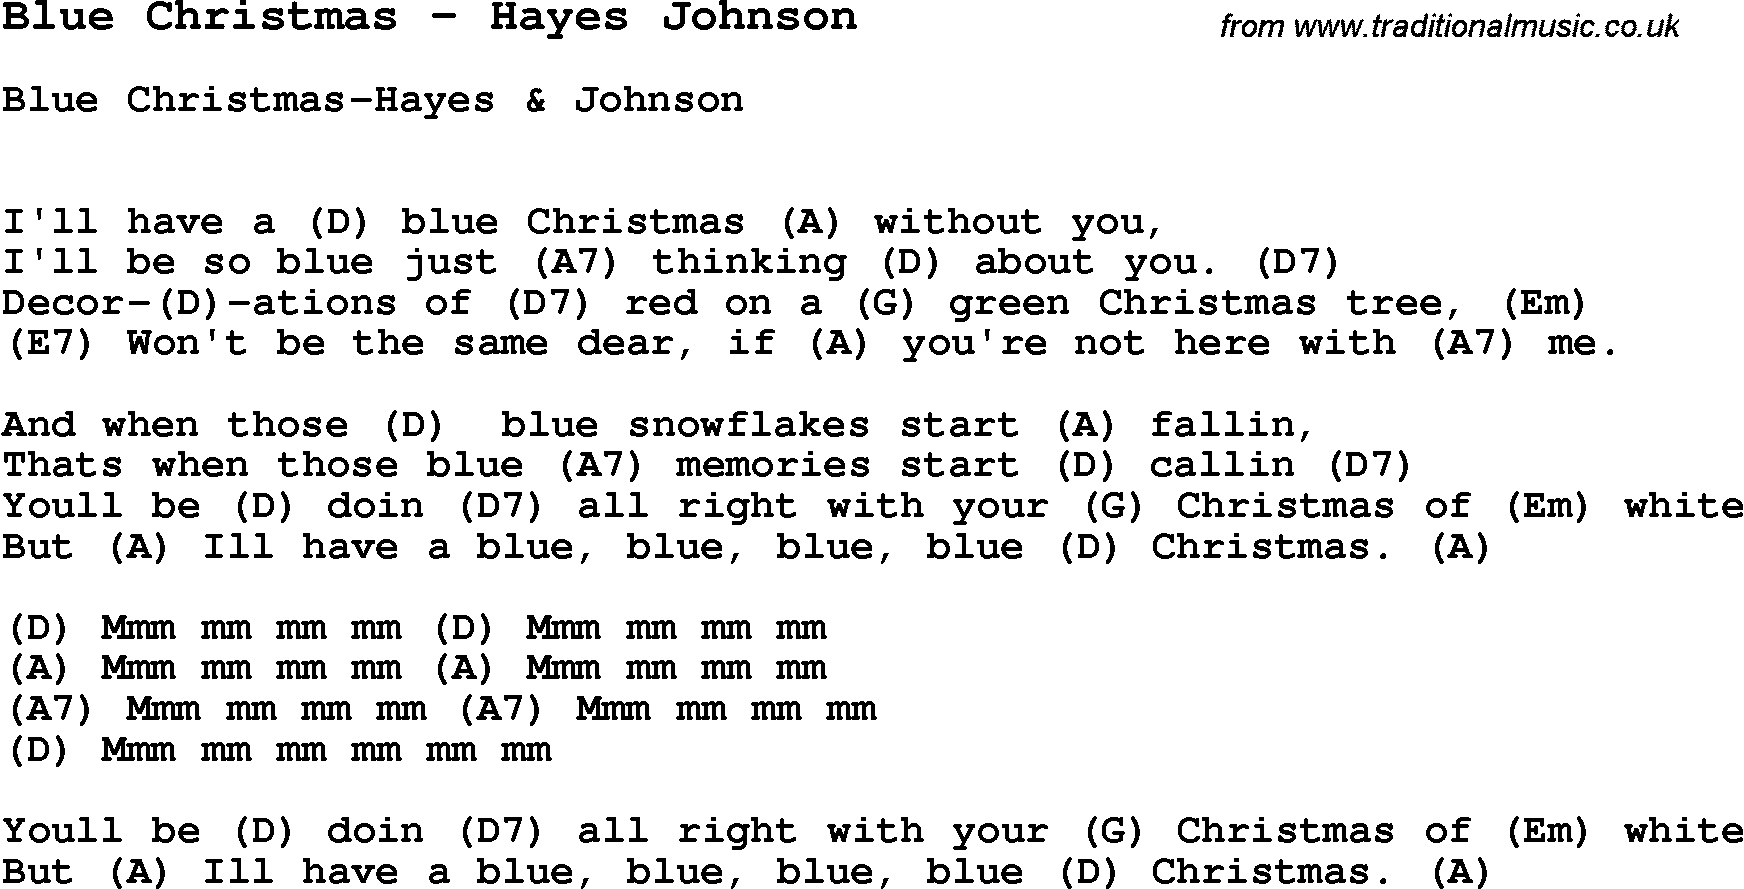 Song Blue Christmas by Hayes Johnson, song lyric for vocal performance plus accompaniment chords ...